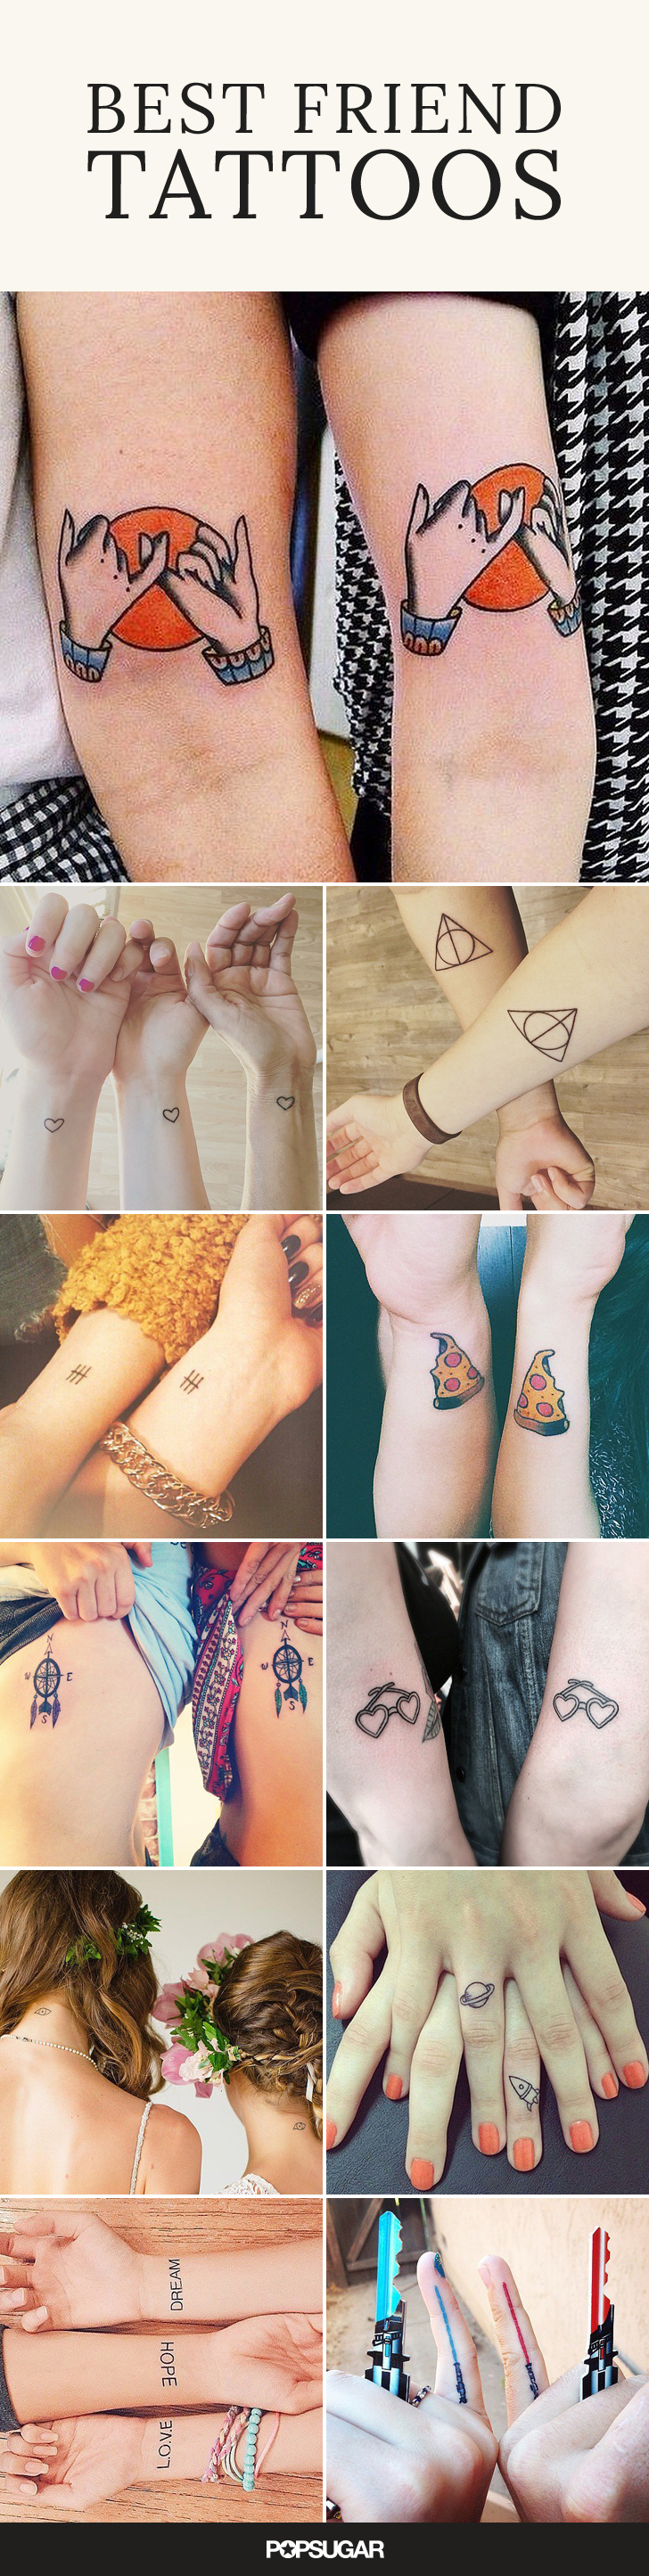 55 creative tattoos you ll want to get with your best friend 4108346f 10bb 4991 9d89 53a6deede096 original